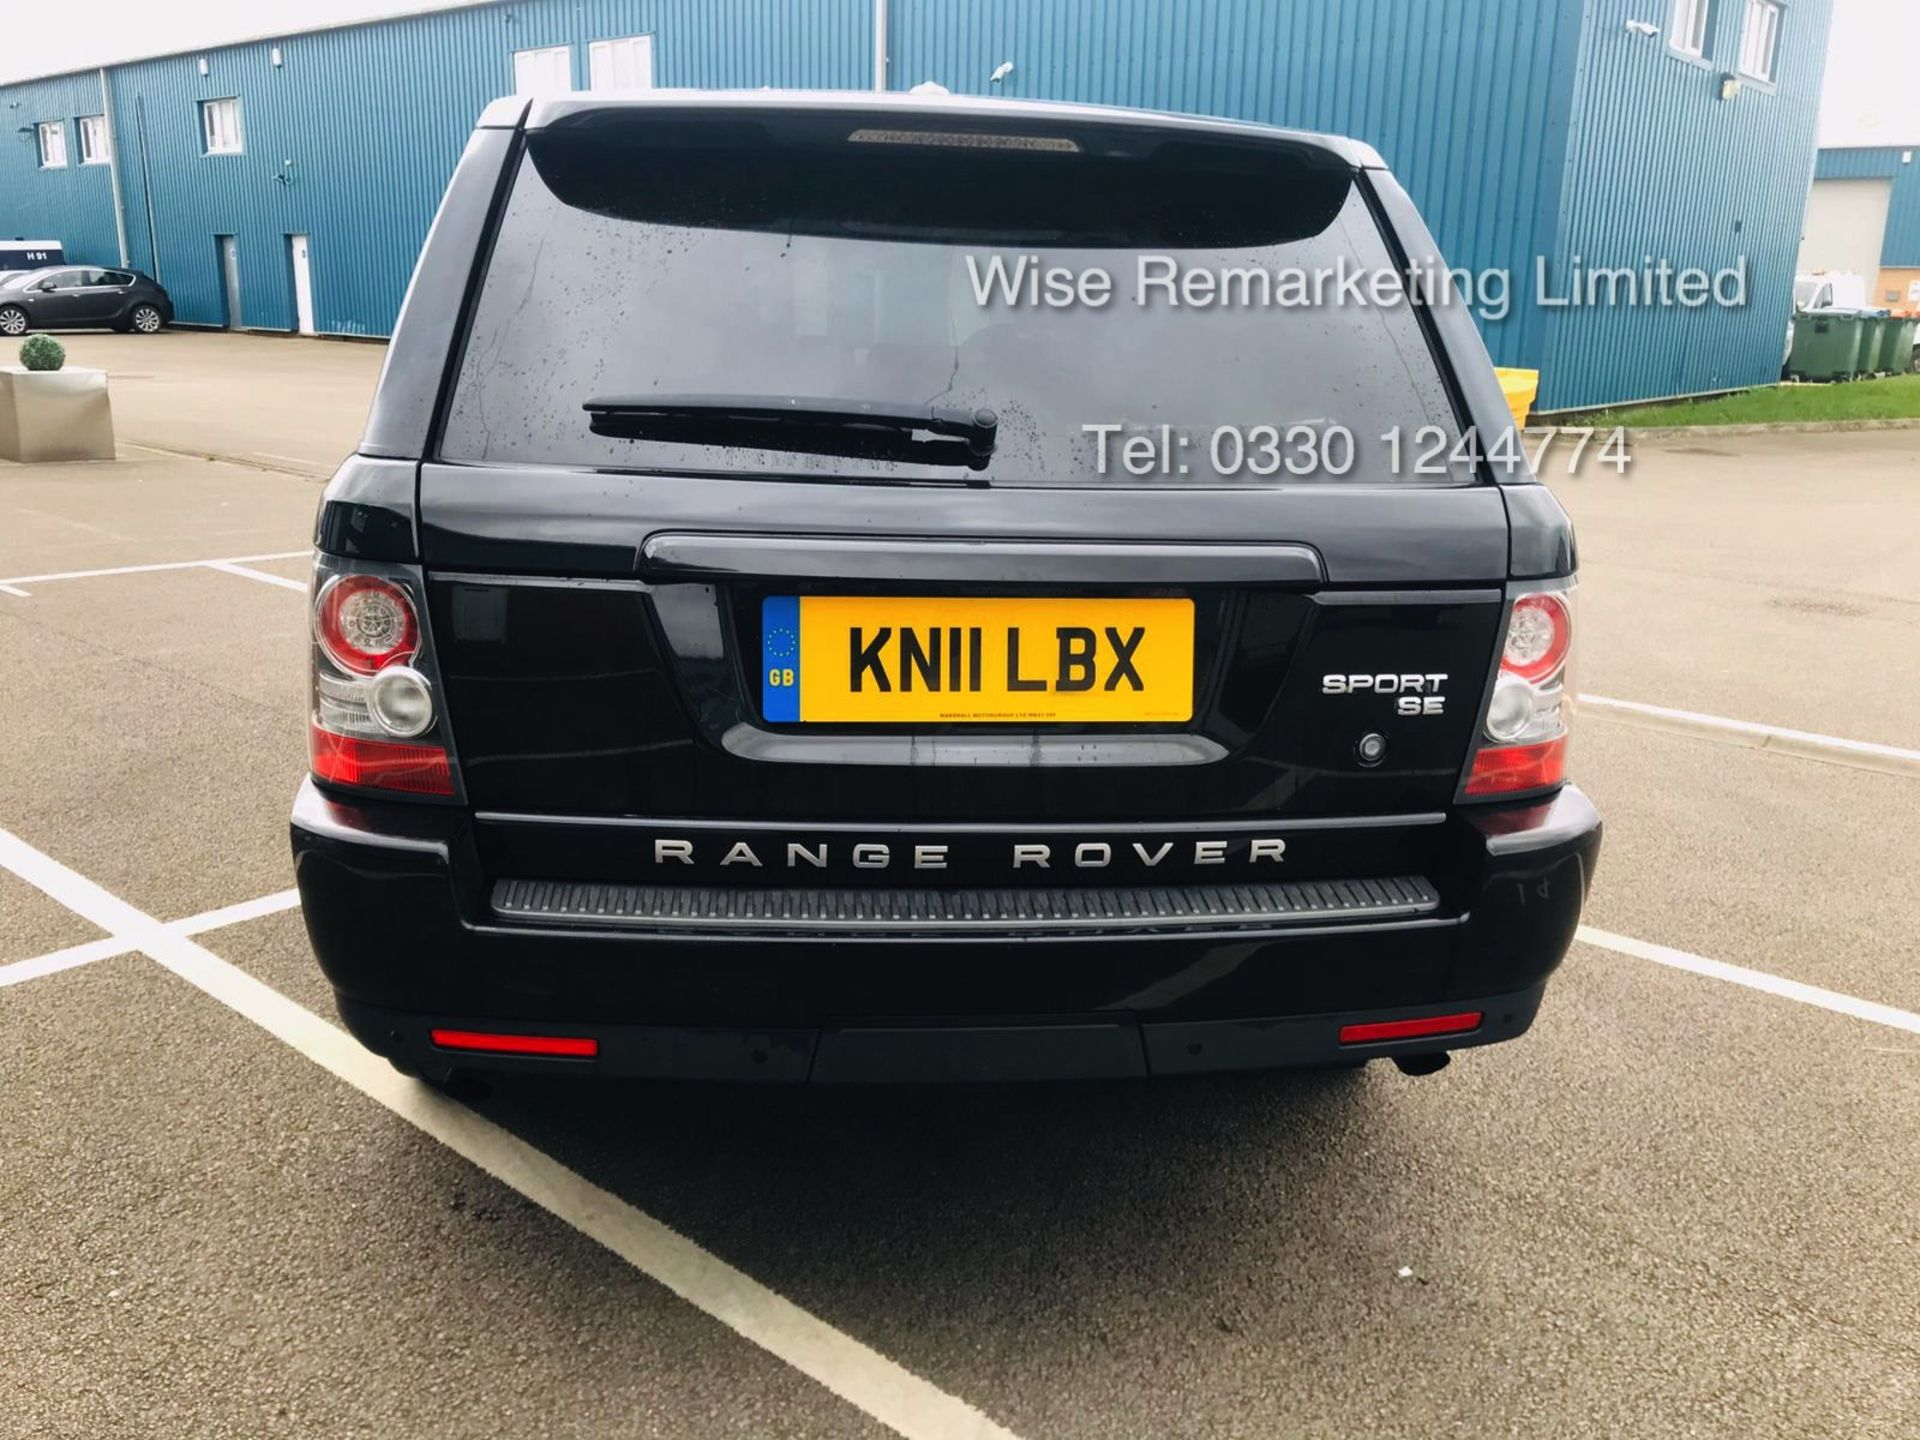 Range Rover Sport SE 3.0 TDV6 Automatic - 2011 11 Reg - 1 Keeper From New - Service History - Image 5 of 21